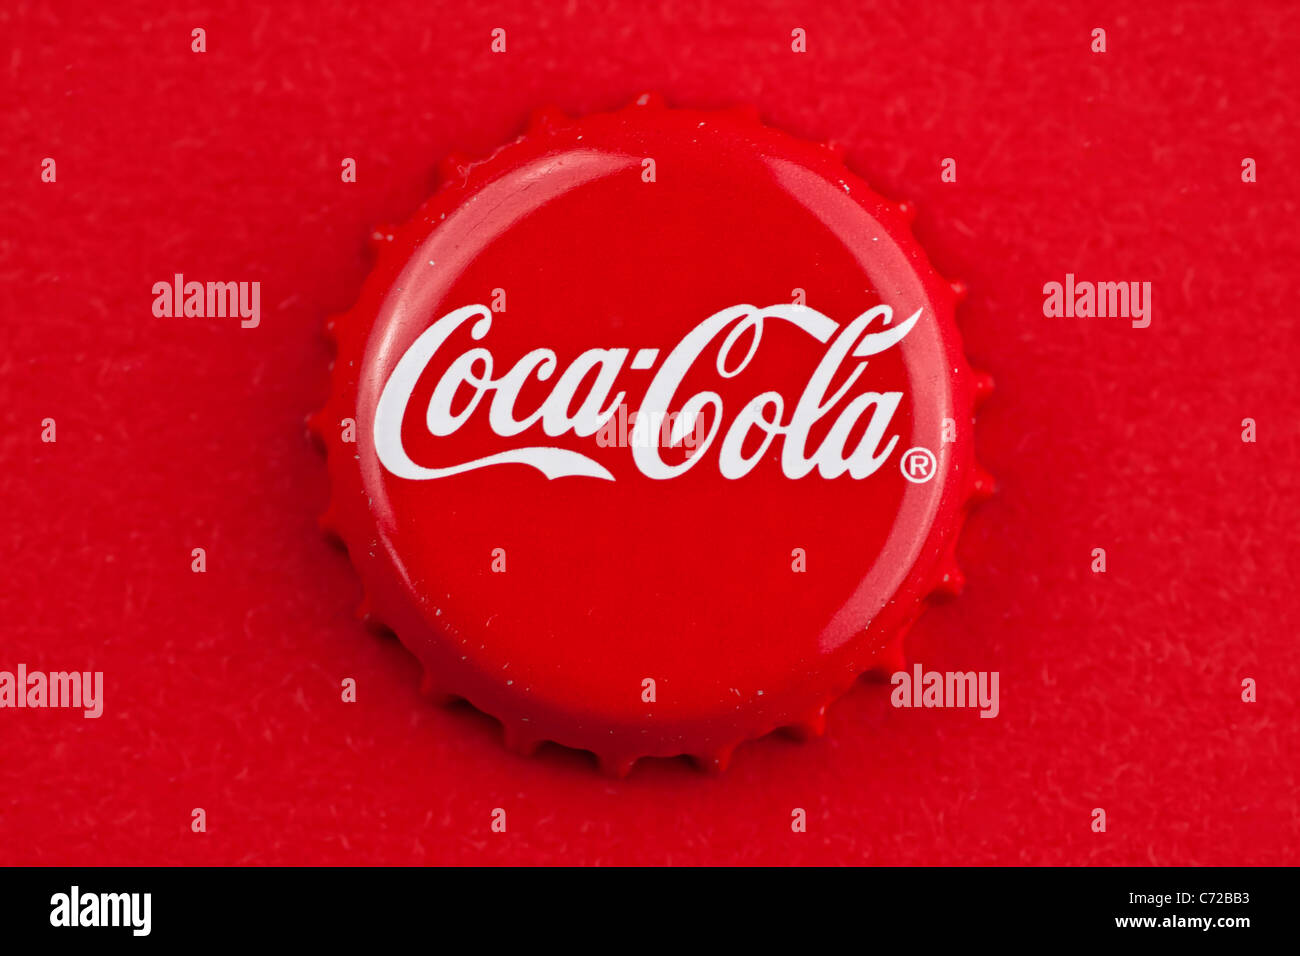 Muenster, Germany - September 10, 2011: Picture shows coca cola bottle cap on red background. - Stock Image